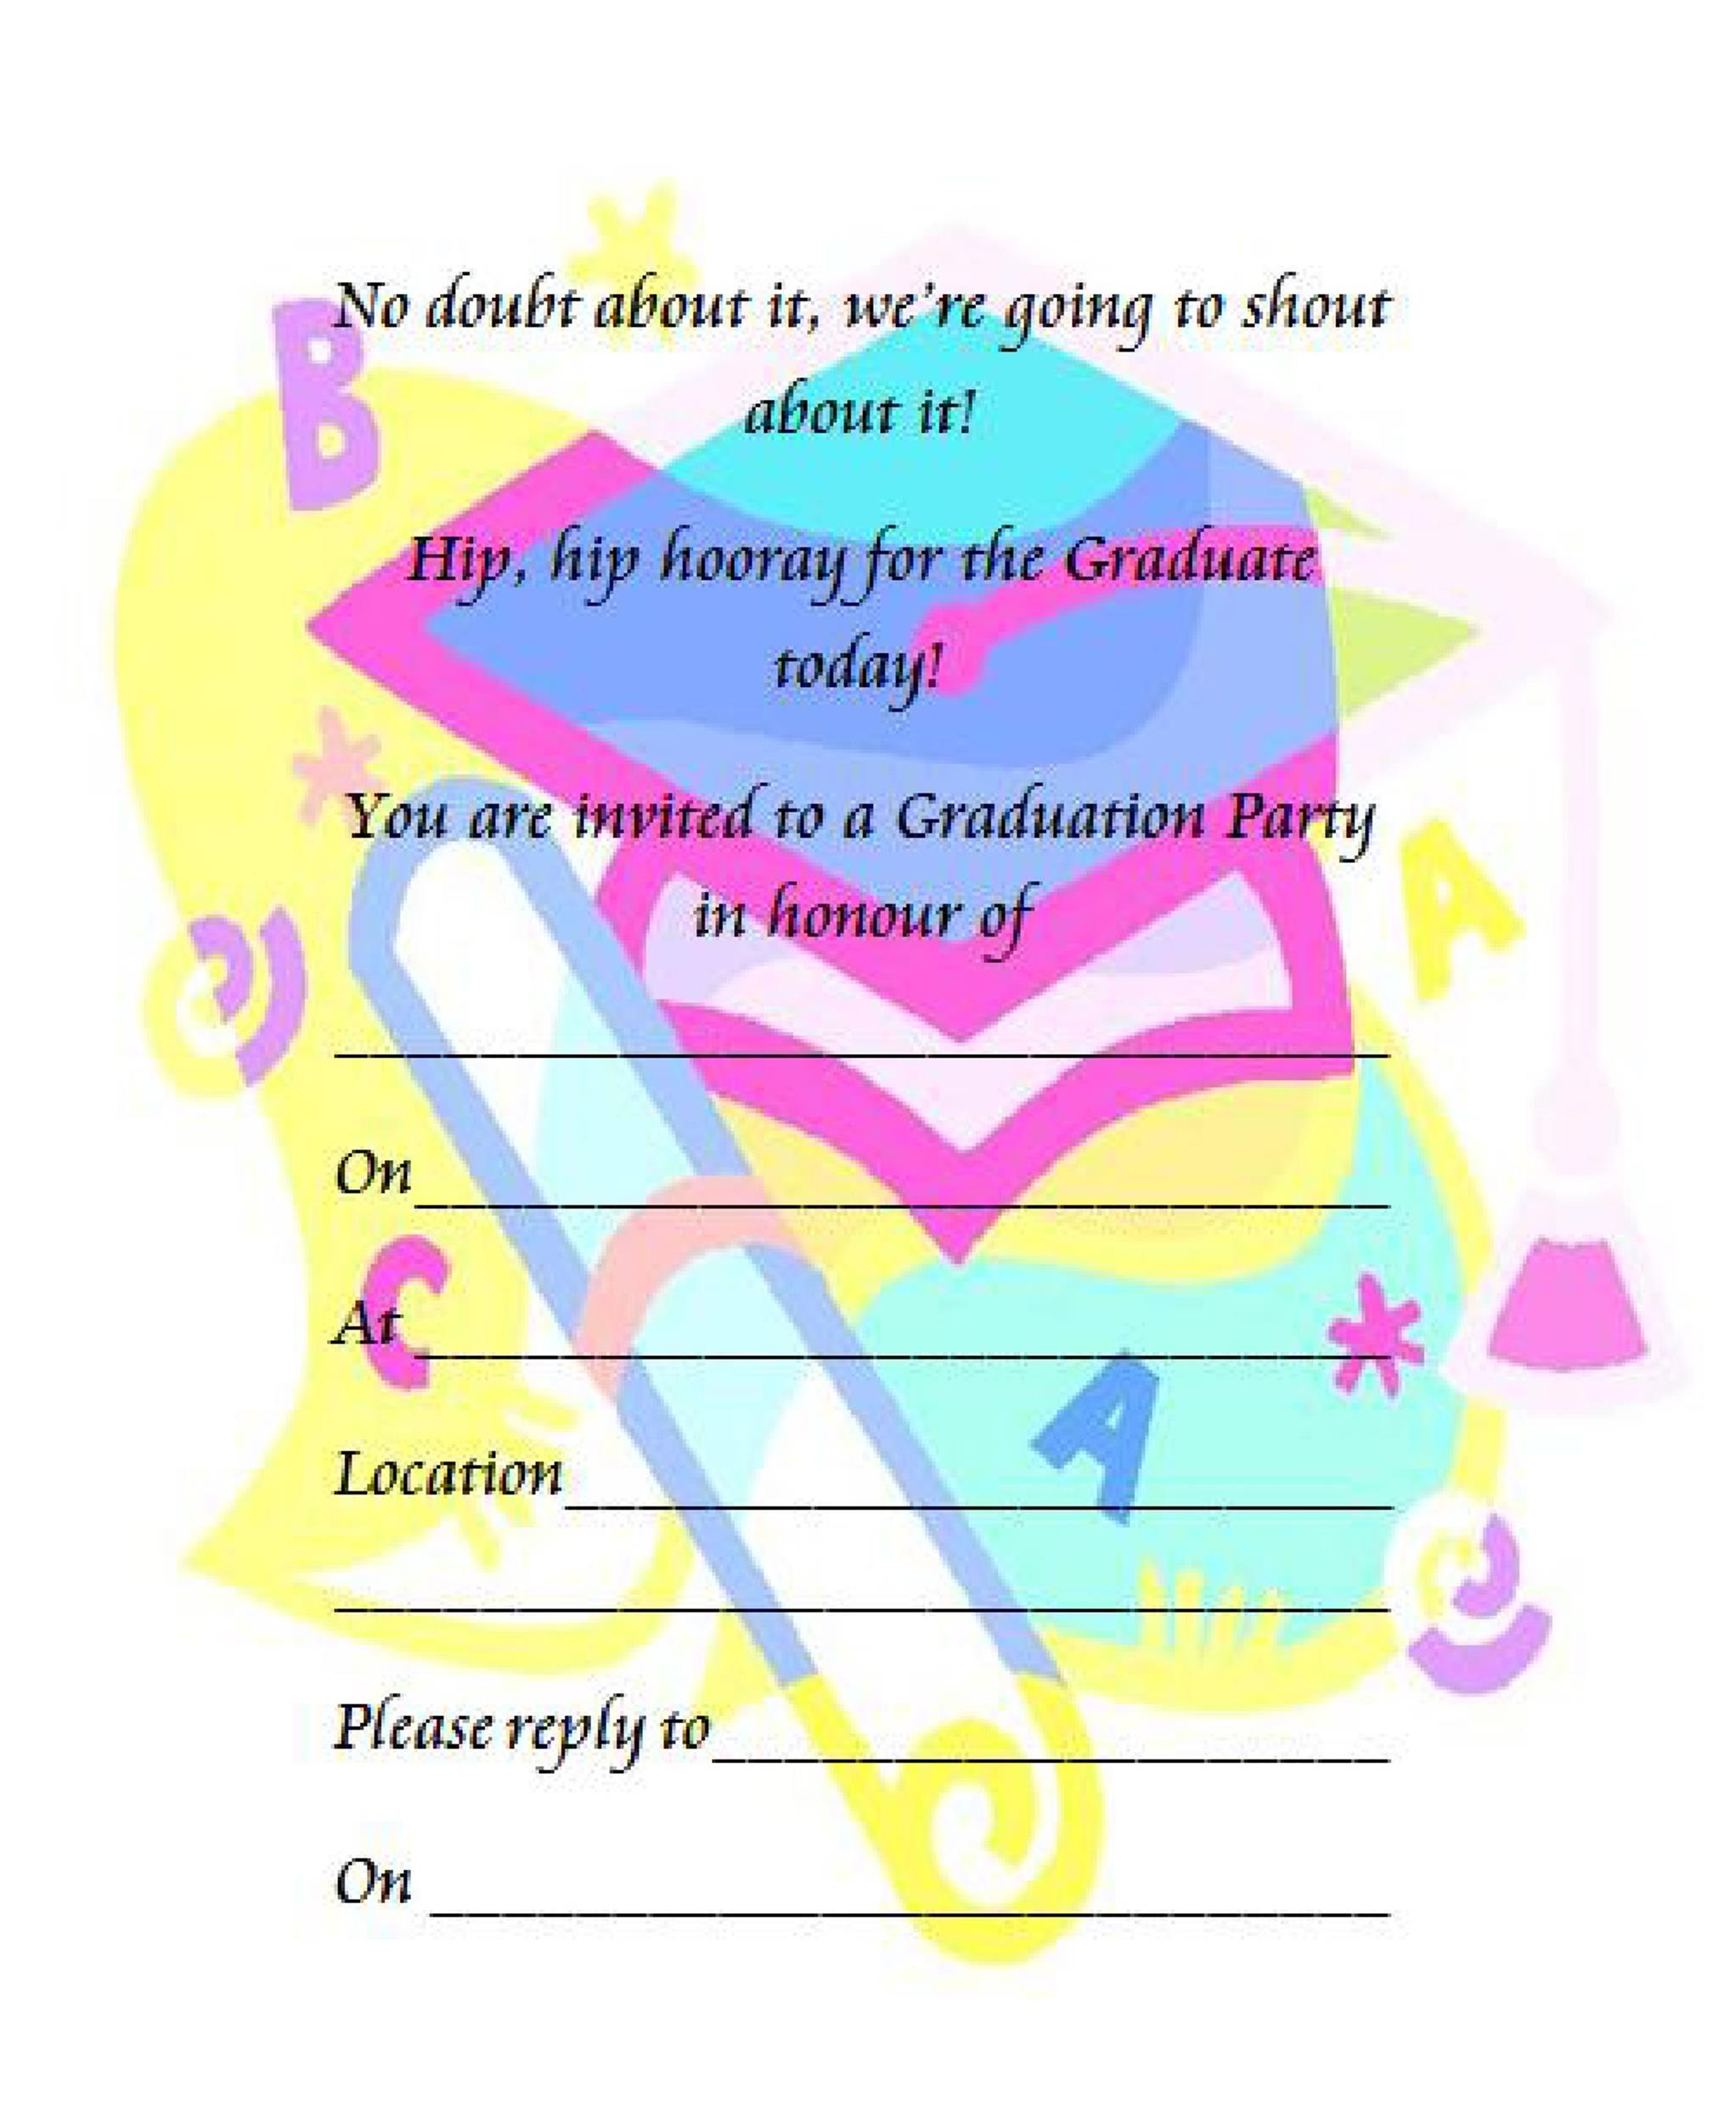 Graduation Invitation Template Novasatfmtk - Party invitation template: graduation party invitation postcard templates free